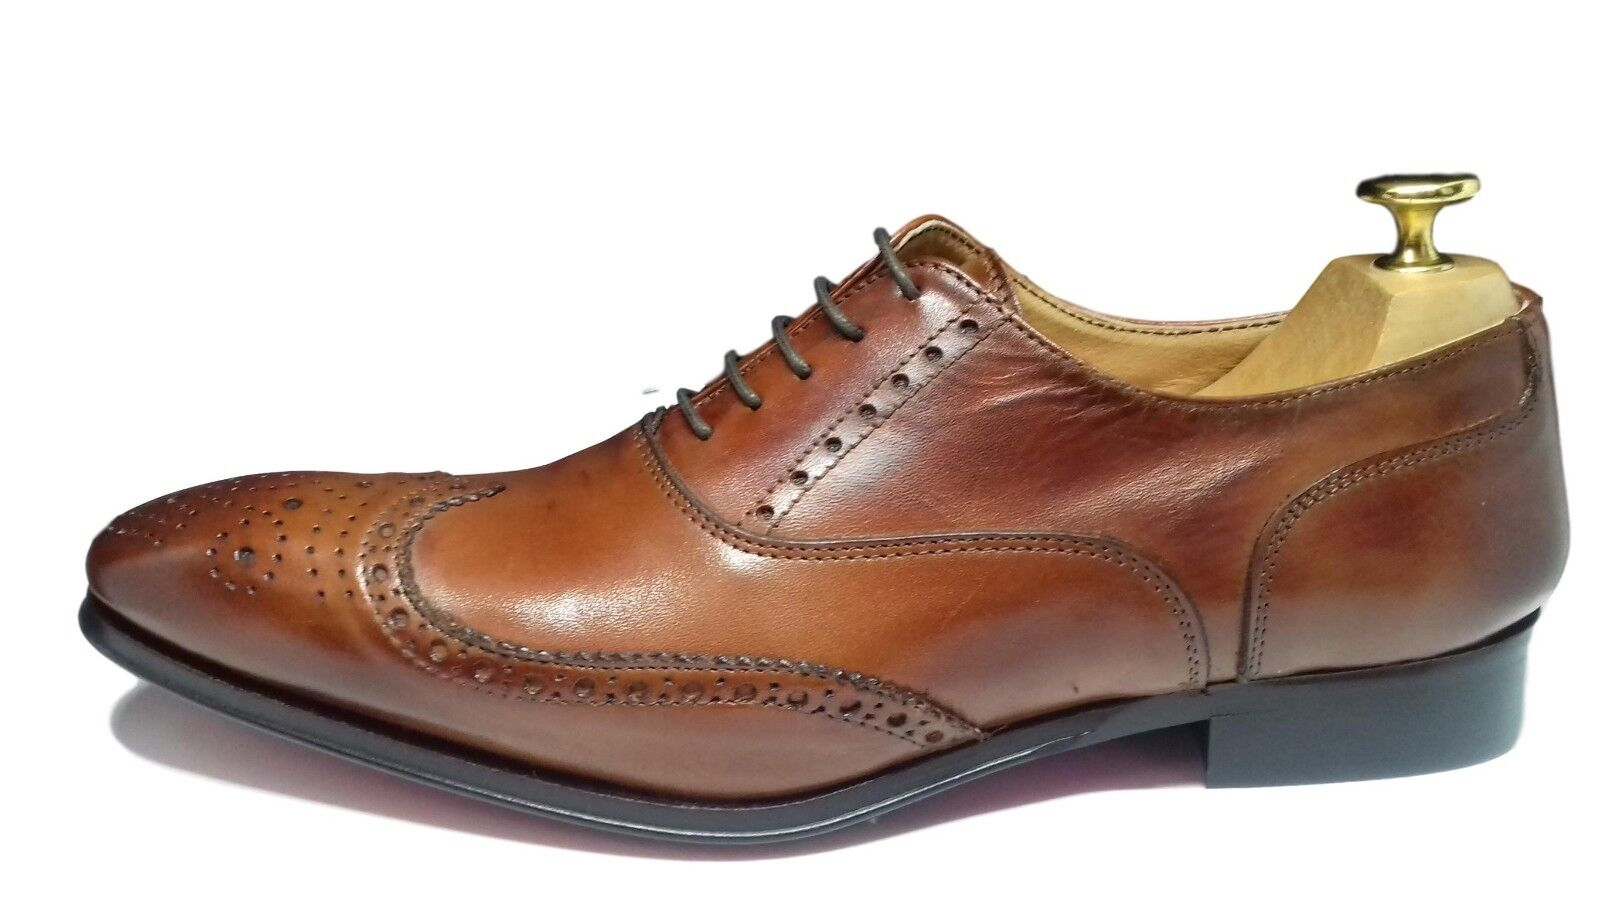 Italienne Chaussure Homme Neuf Luxe Olbefi1239 Cuir Marron qzMVSUp